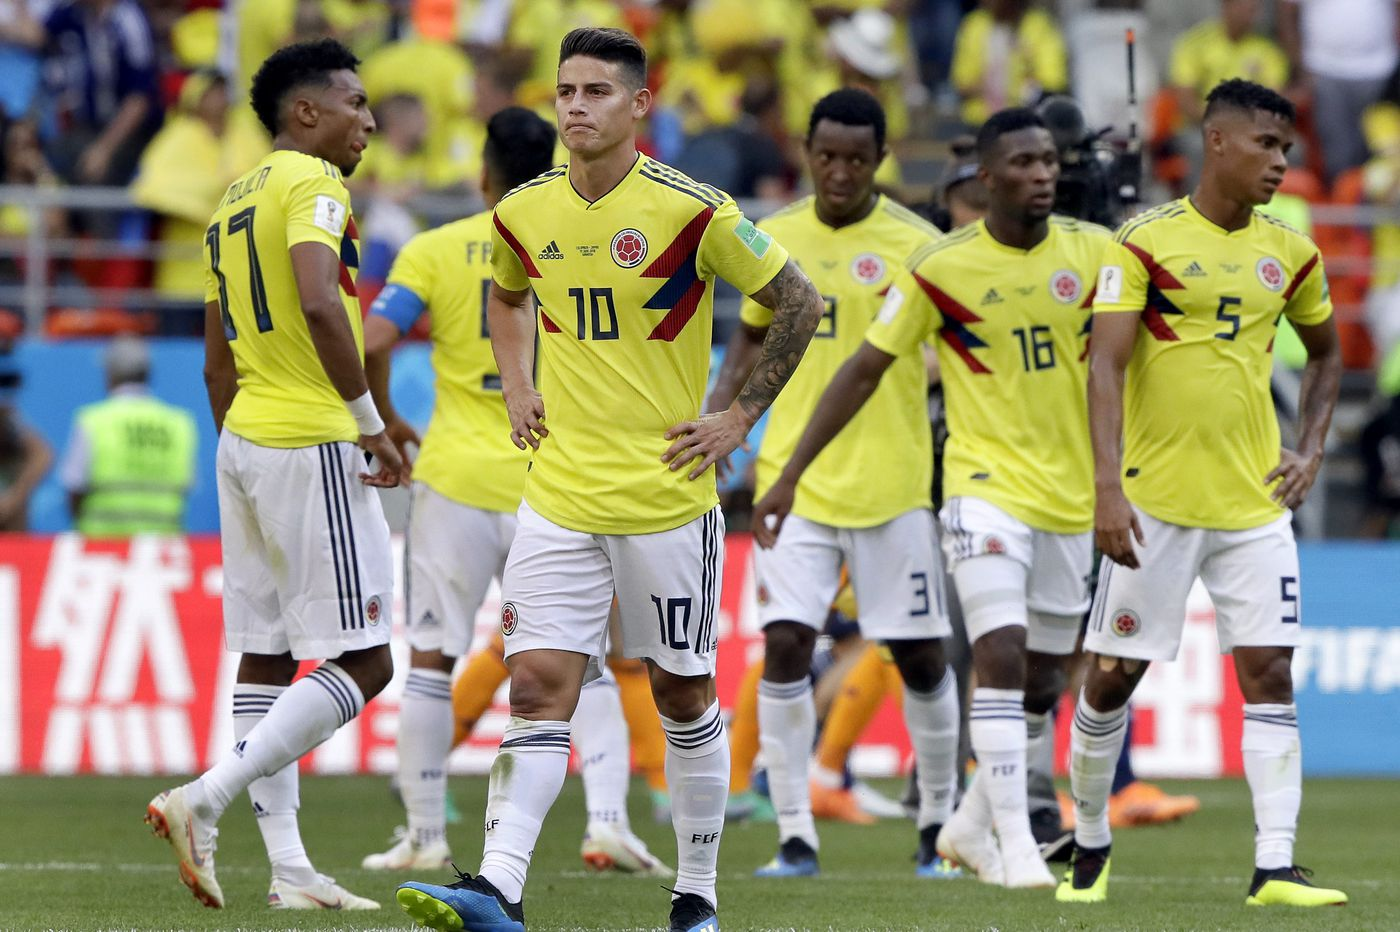 England-Panama, Japan-Senegal, Poland-Colombia make up the World Cup schedule for June 24